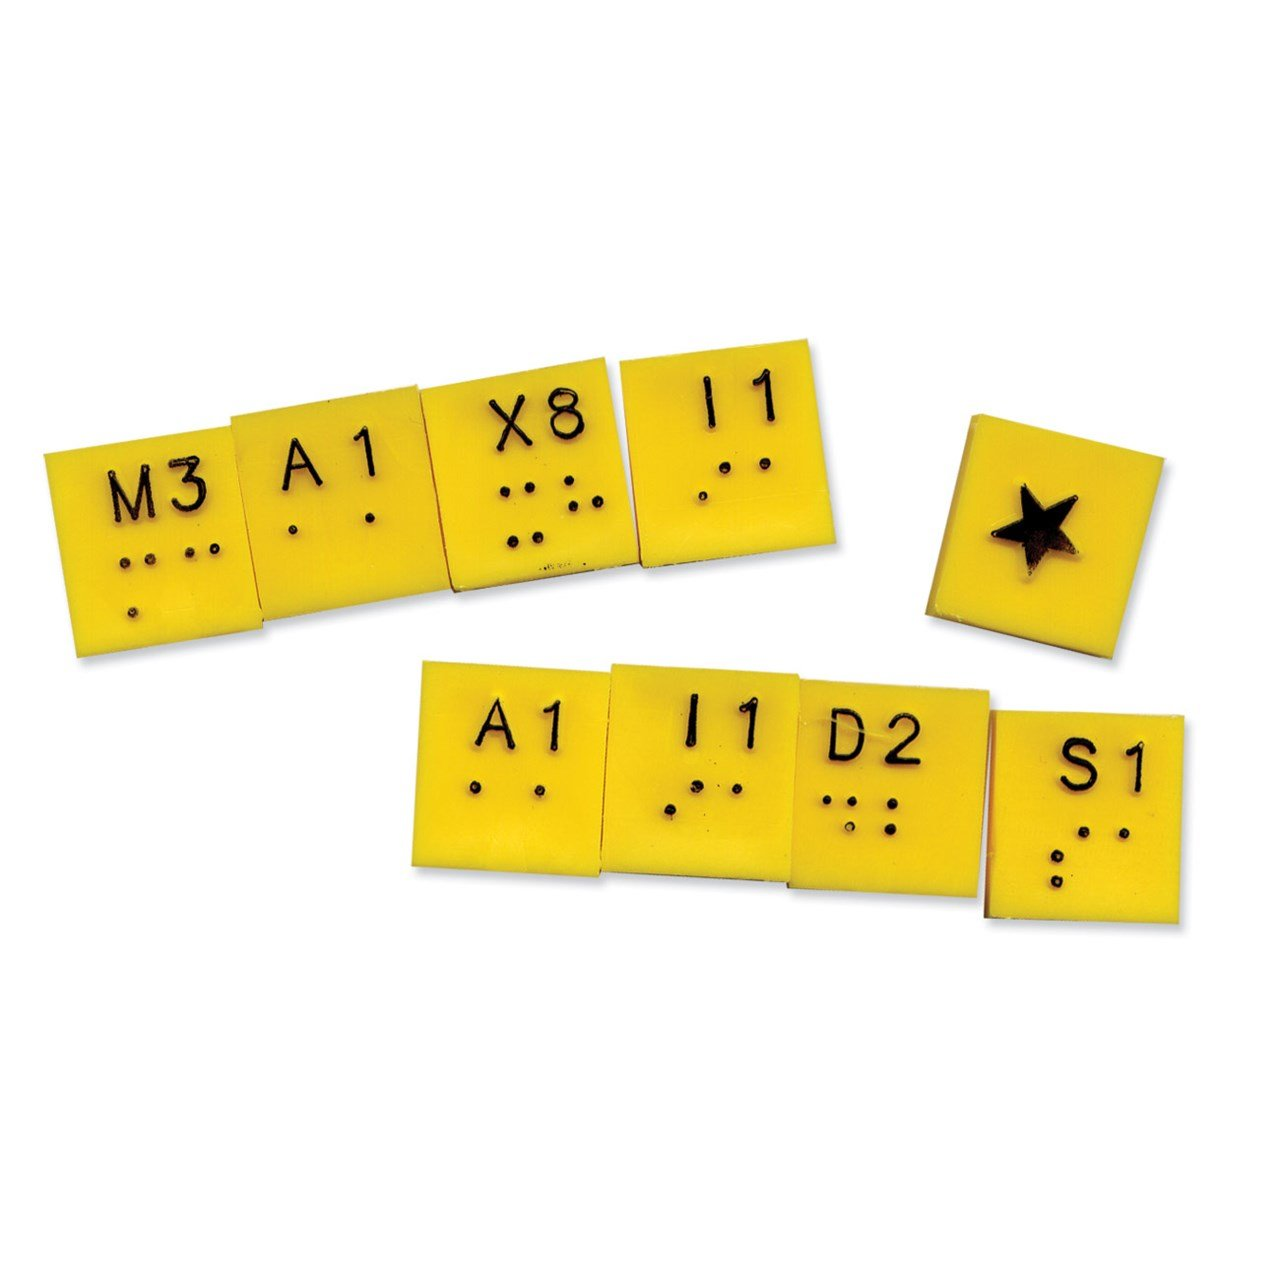 Extra Yellow Tiles - Braille Scrabble- Bag of 100